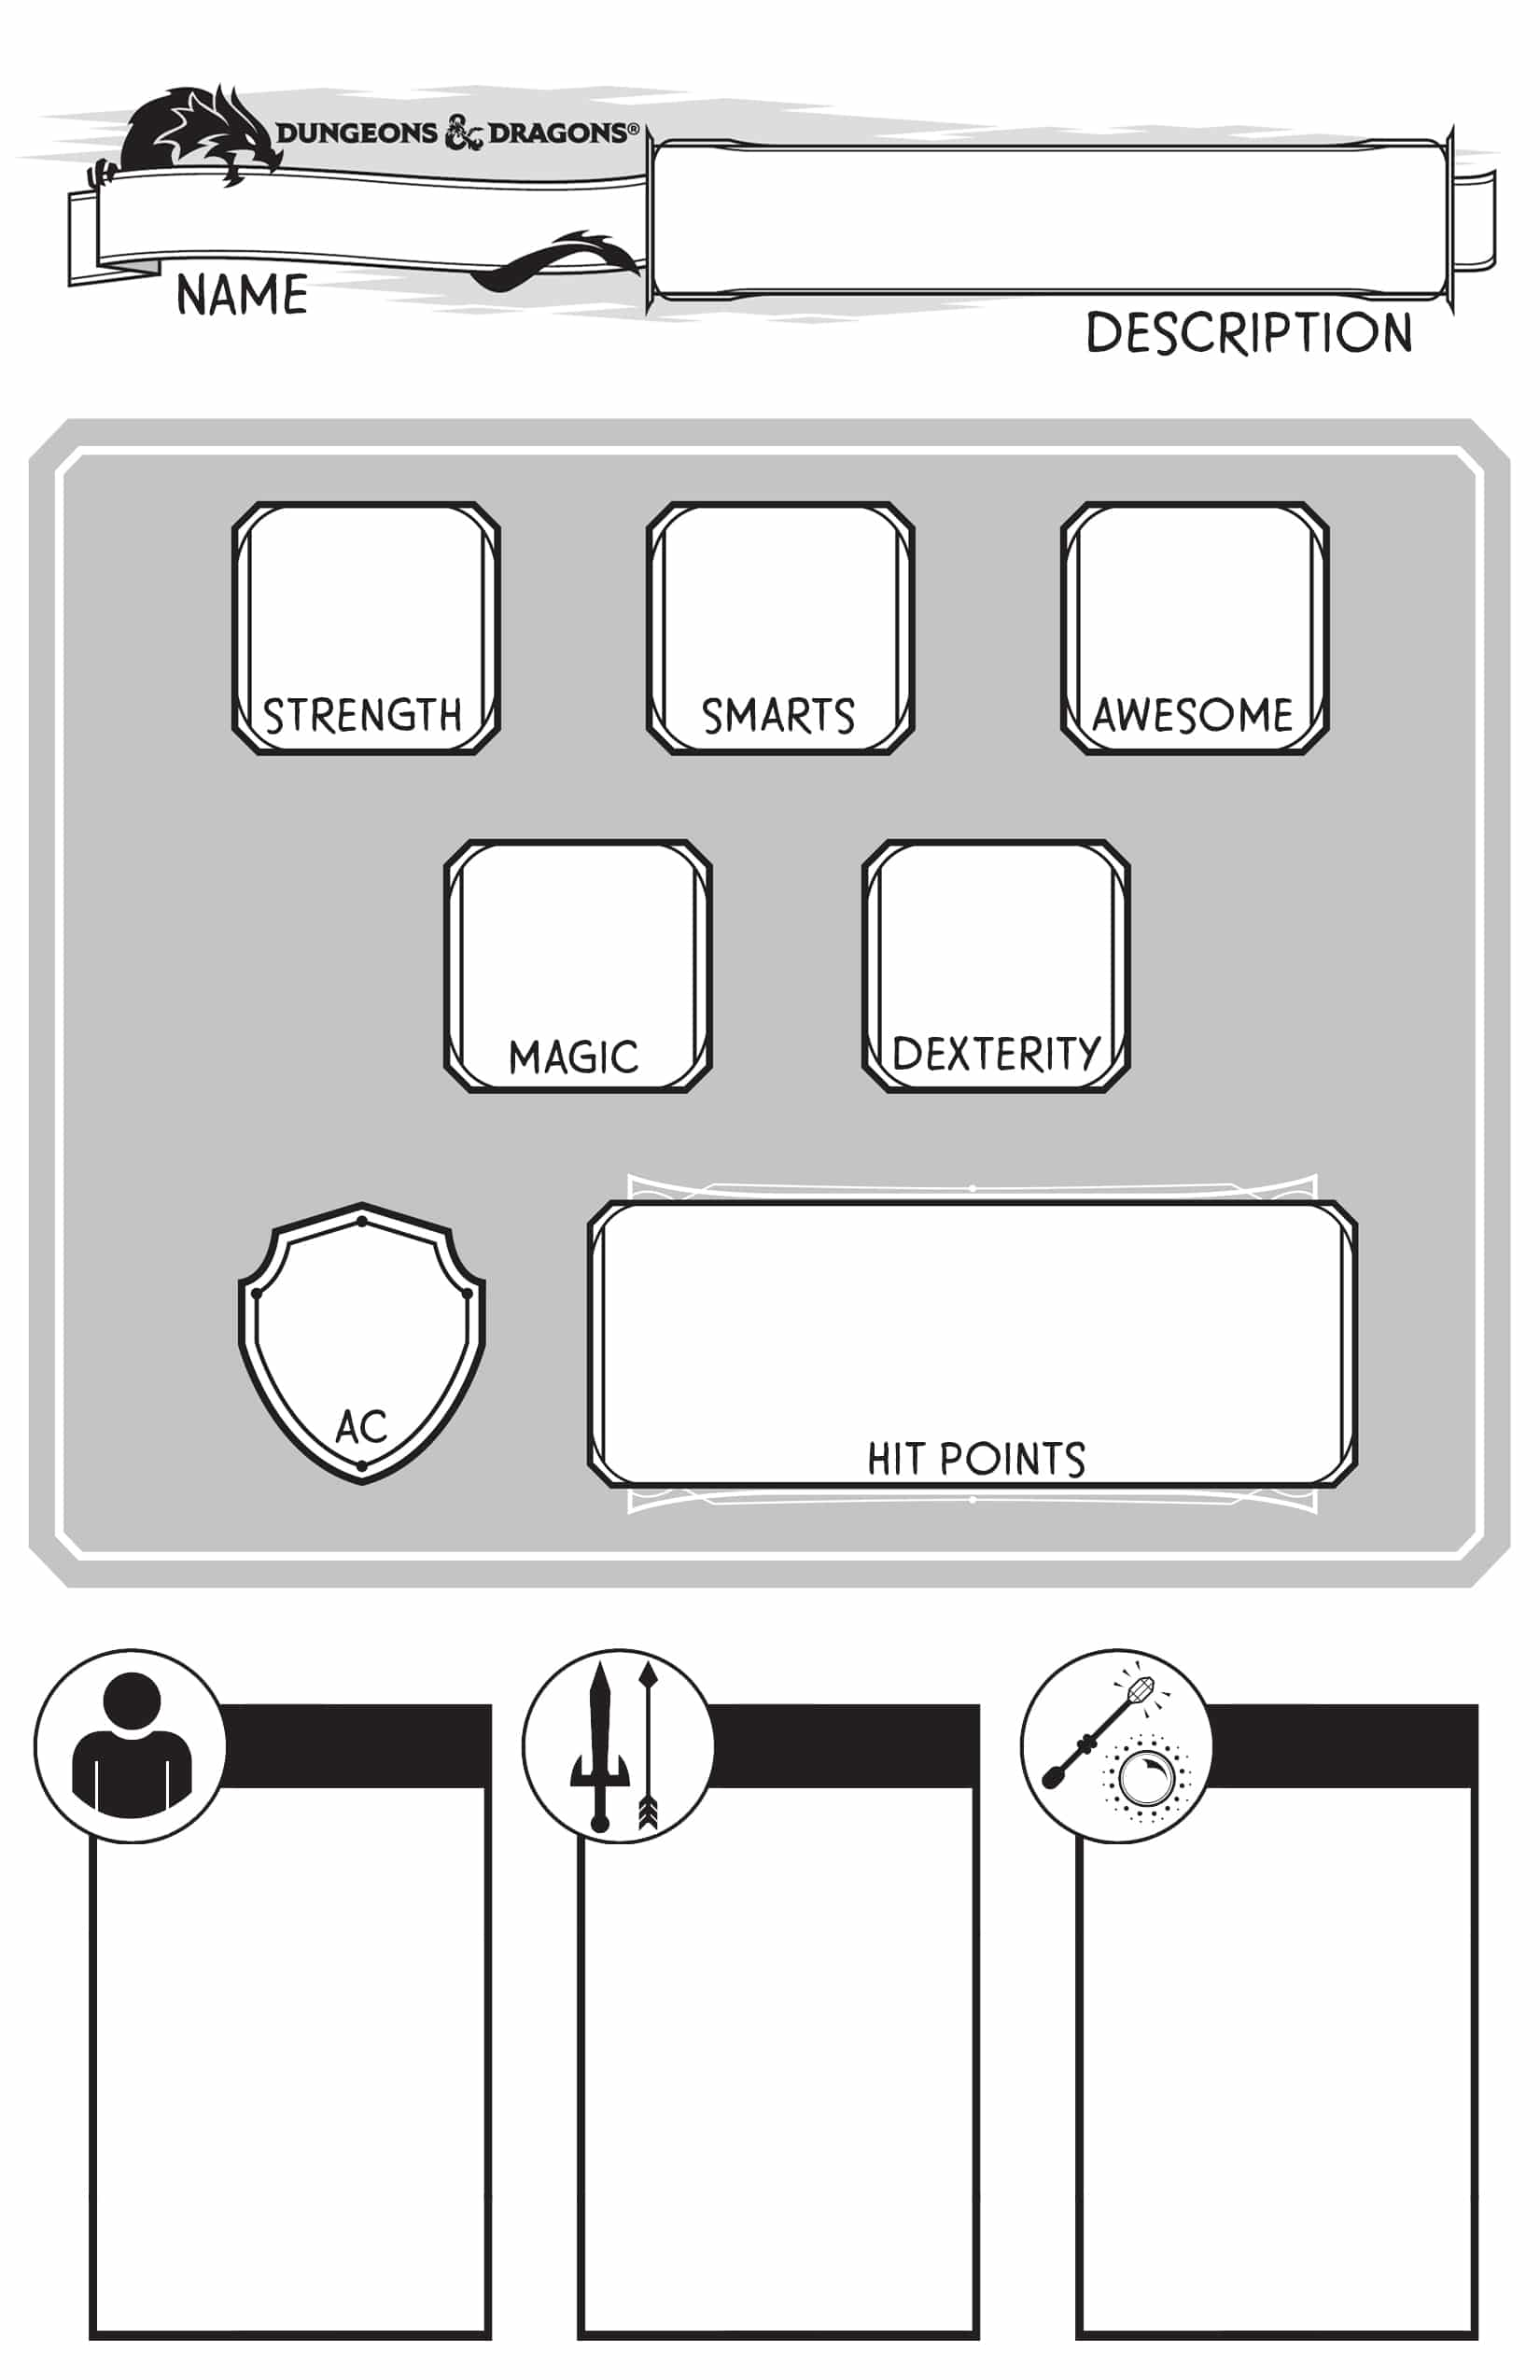 Simplified Dungeons And Dragons For Young Kids